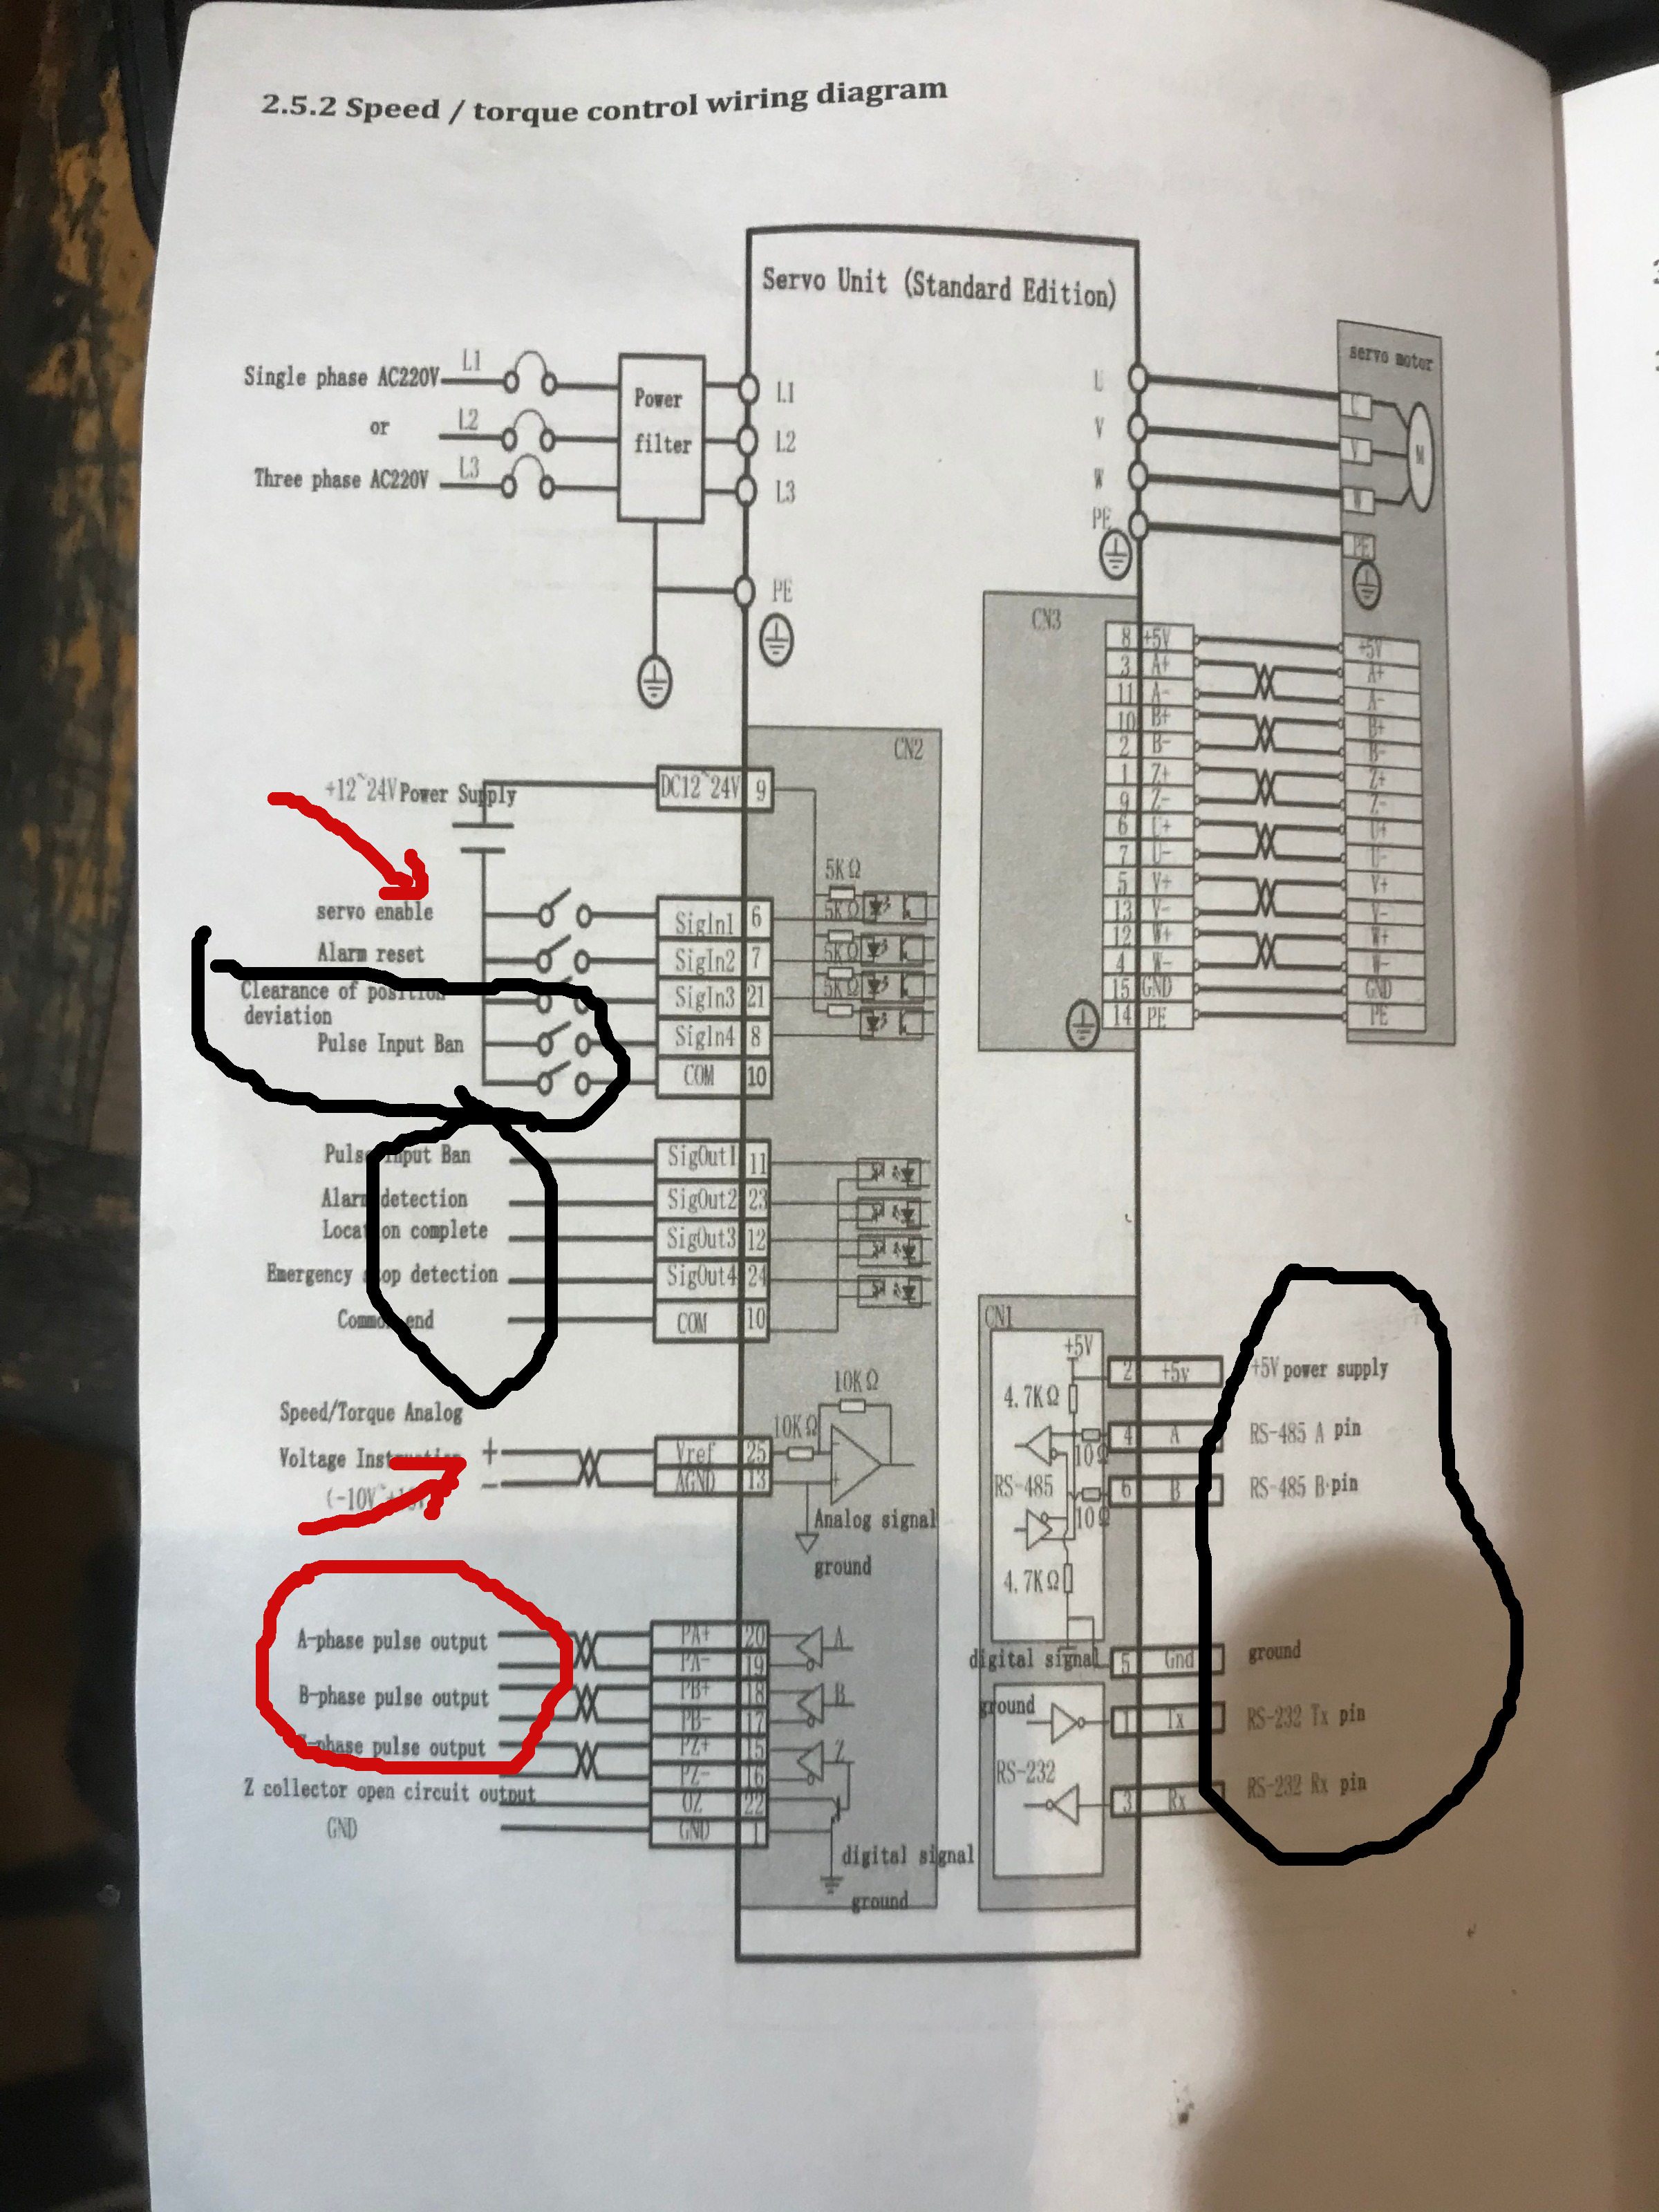 Servo Wiring And Operation - Help Needed Wiring Diagram